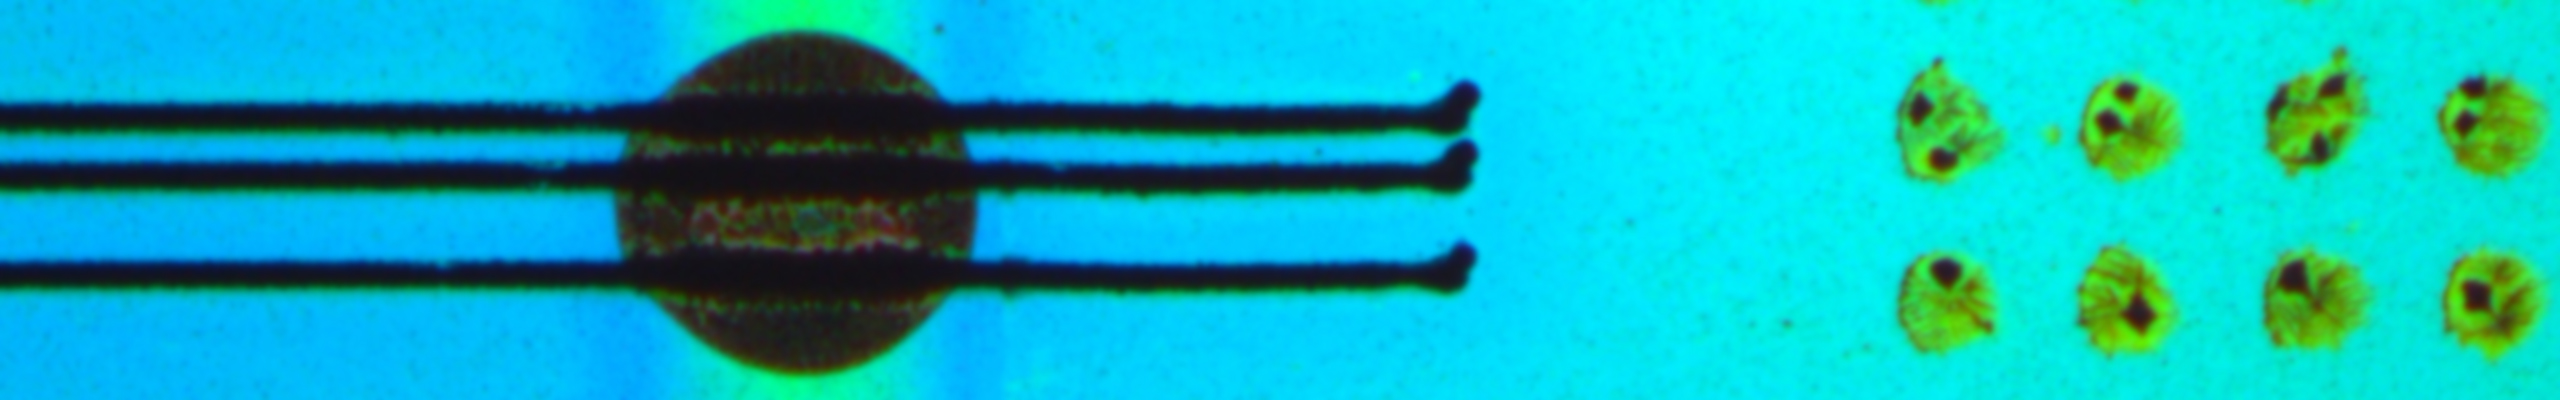 microscope image of biosensors from Chilkoti lab